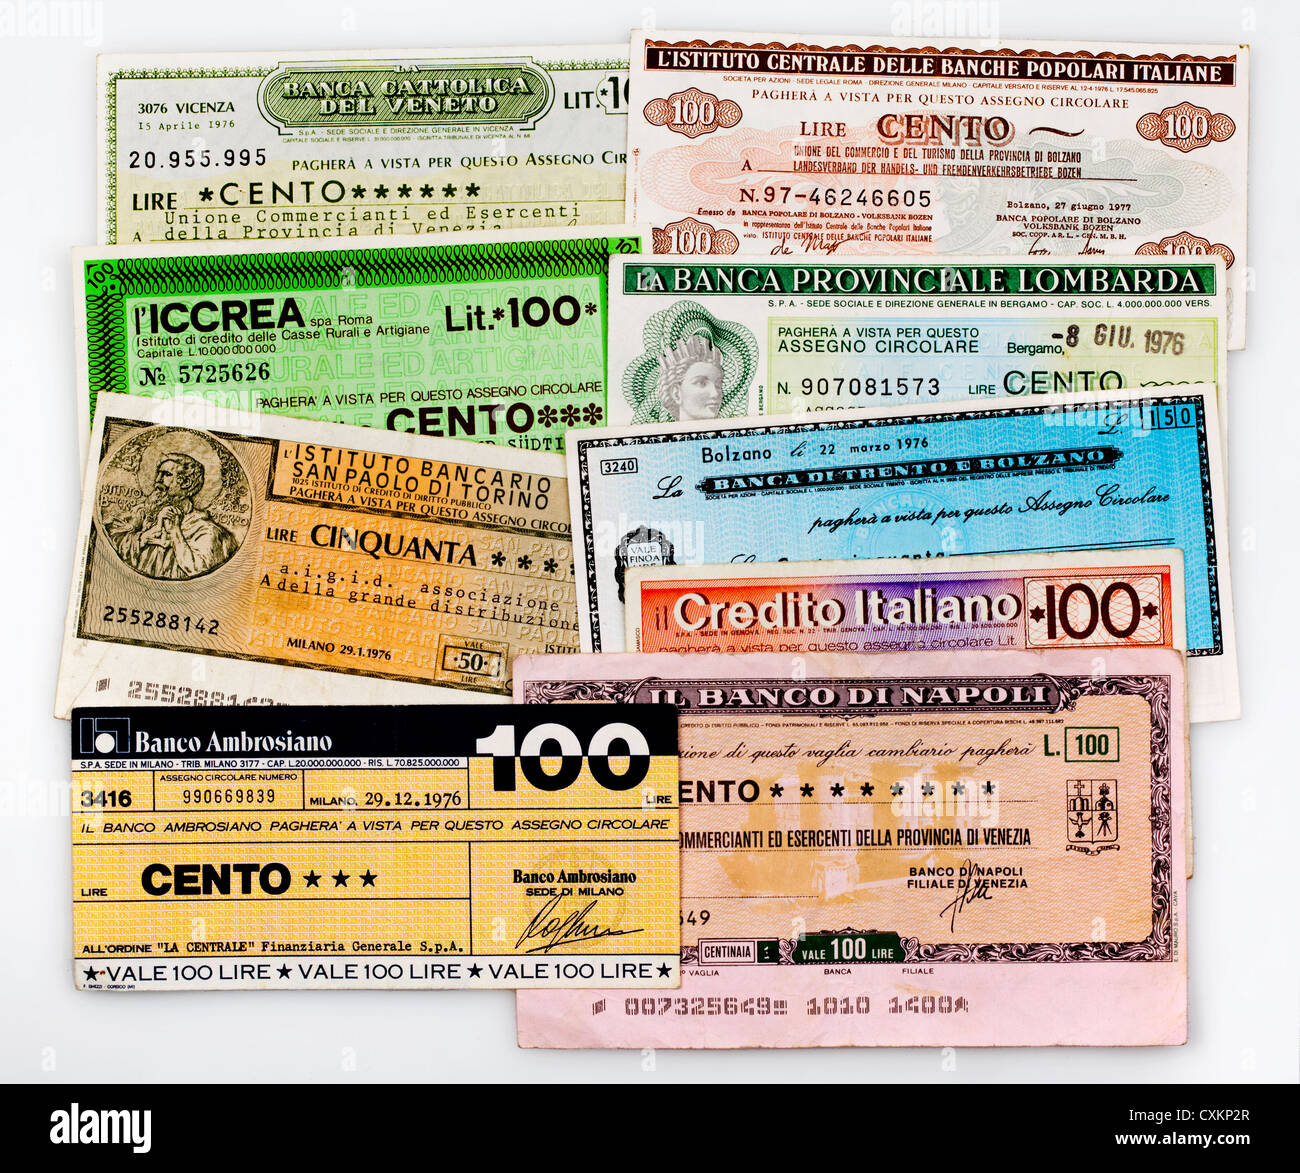 Miniassegni, Italian bank transfer, money order with a low value, Il Banco Ambrosiano, Mailand - Stock Image